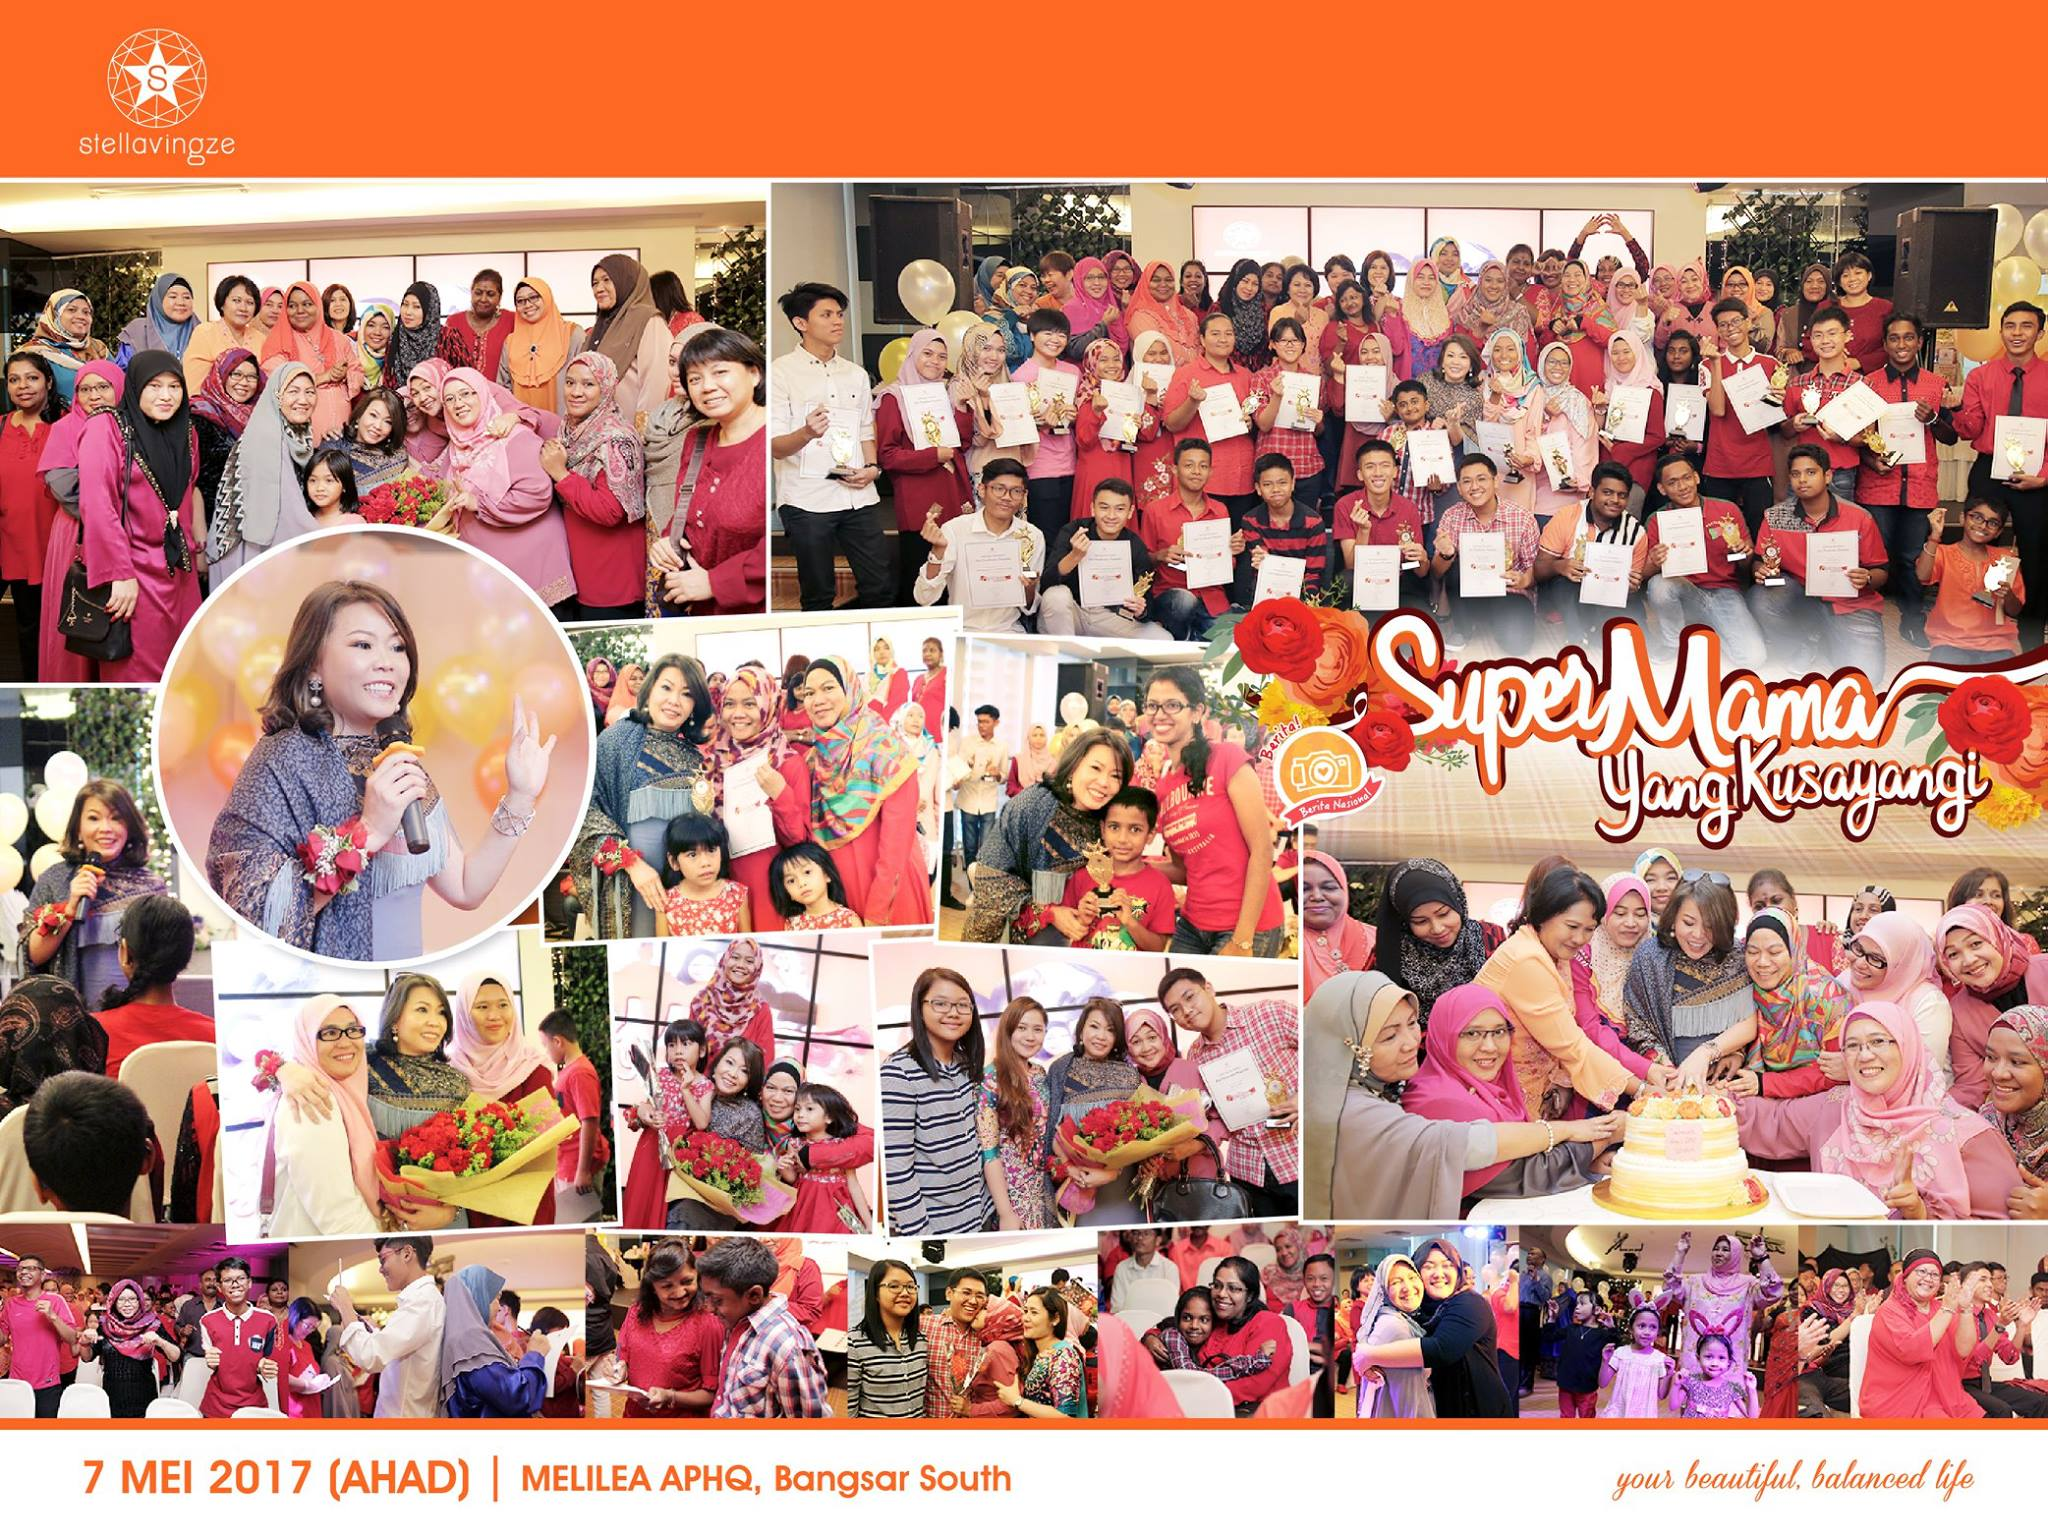 "SuperMama Yang Kusayangi |   ""Happiness starts at home"" - Datuk Stella Chin (Founder of Stellavingze International)  It was a special and memorable evening for mothers to discover the love their children have for them though they never express with words and actions.  We are grateful to have these children appreciate and love their mother. Don't forget to hug and tell how your mother how much you love her. Always remember how much she has dedicated her life in nurturing you and guarding the family wholeheartedly. All mothers are special and unique.  Wishing all SuperMama around the world a Happy Mothers' Day!    Methodist Girls School Kuala Lumpur   SMK (L) Methodist Kuala Lumpur   SMK Cochrane    SMK Convent Bukit Nanas    SMK Sentul Utama    #StellavingzeInternational  #YourBeautifulBalancedLife  #SuperMamaYangKusayangi   #SMKPMethodist    #SMKLMethodistKualaLumpur   #SMKCochrane    #SMKConventBukitNanas    #SMKSentulUtama"